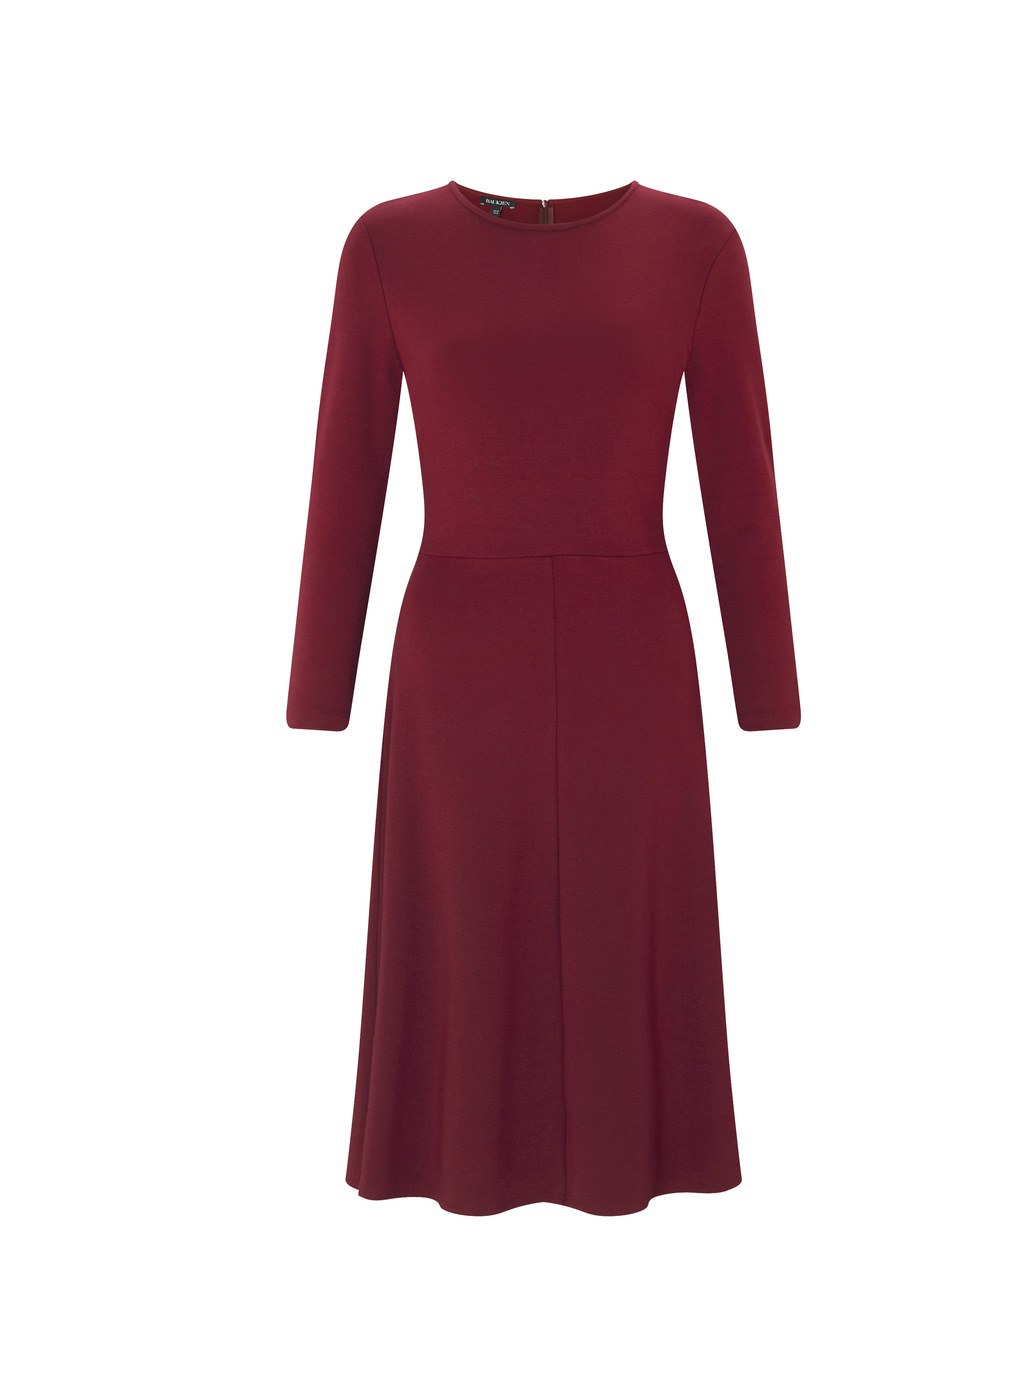 Womenswear Northwood Dress - length: below the knee; pattern: plain; predominant colour: burgundy; occasions: evening; fit: fitted at waist & bust; style: fit & flare; fibres: cotton - stretch; neckline: crew; sleeve length: long sleeve; sleeve style: standard; pattern type: fabric; texture group: jersey - stretchy/drapey; season: a/w 2016; wardrobe: event